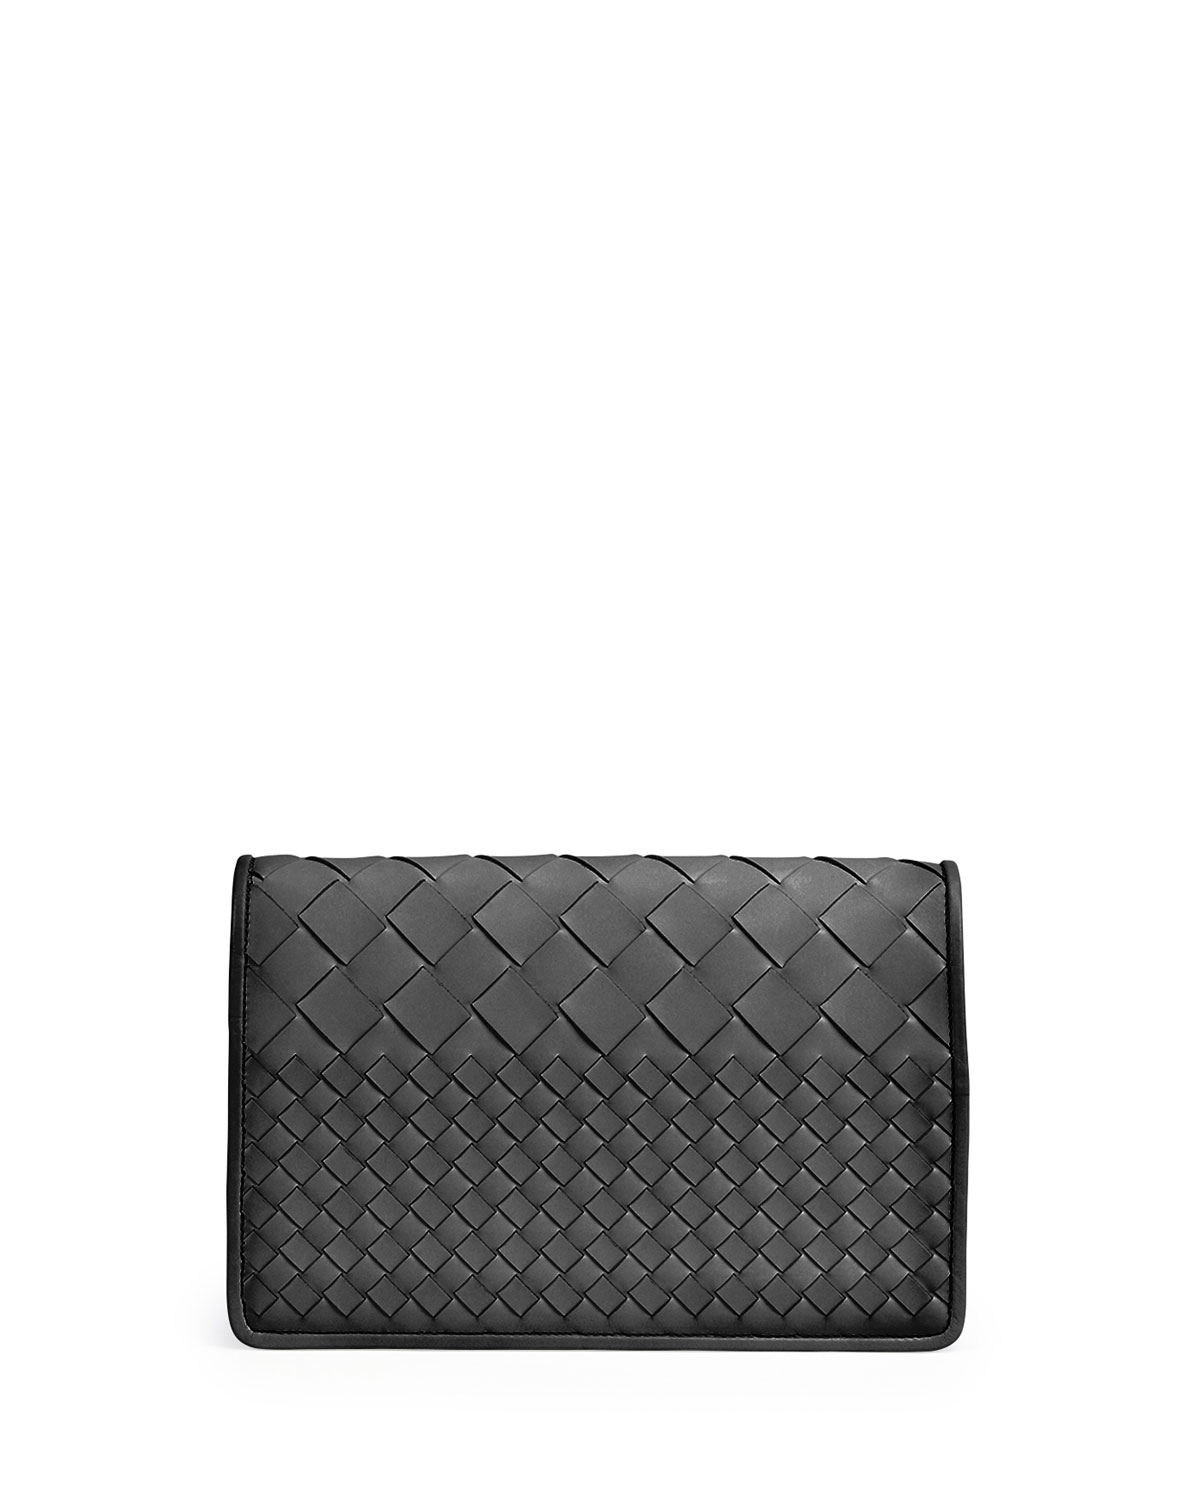 fd2fff466cf5 Bottega Veneta Intrecciato Medium Woven Clutch Bag